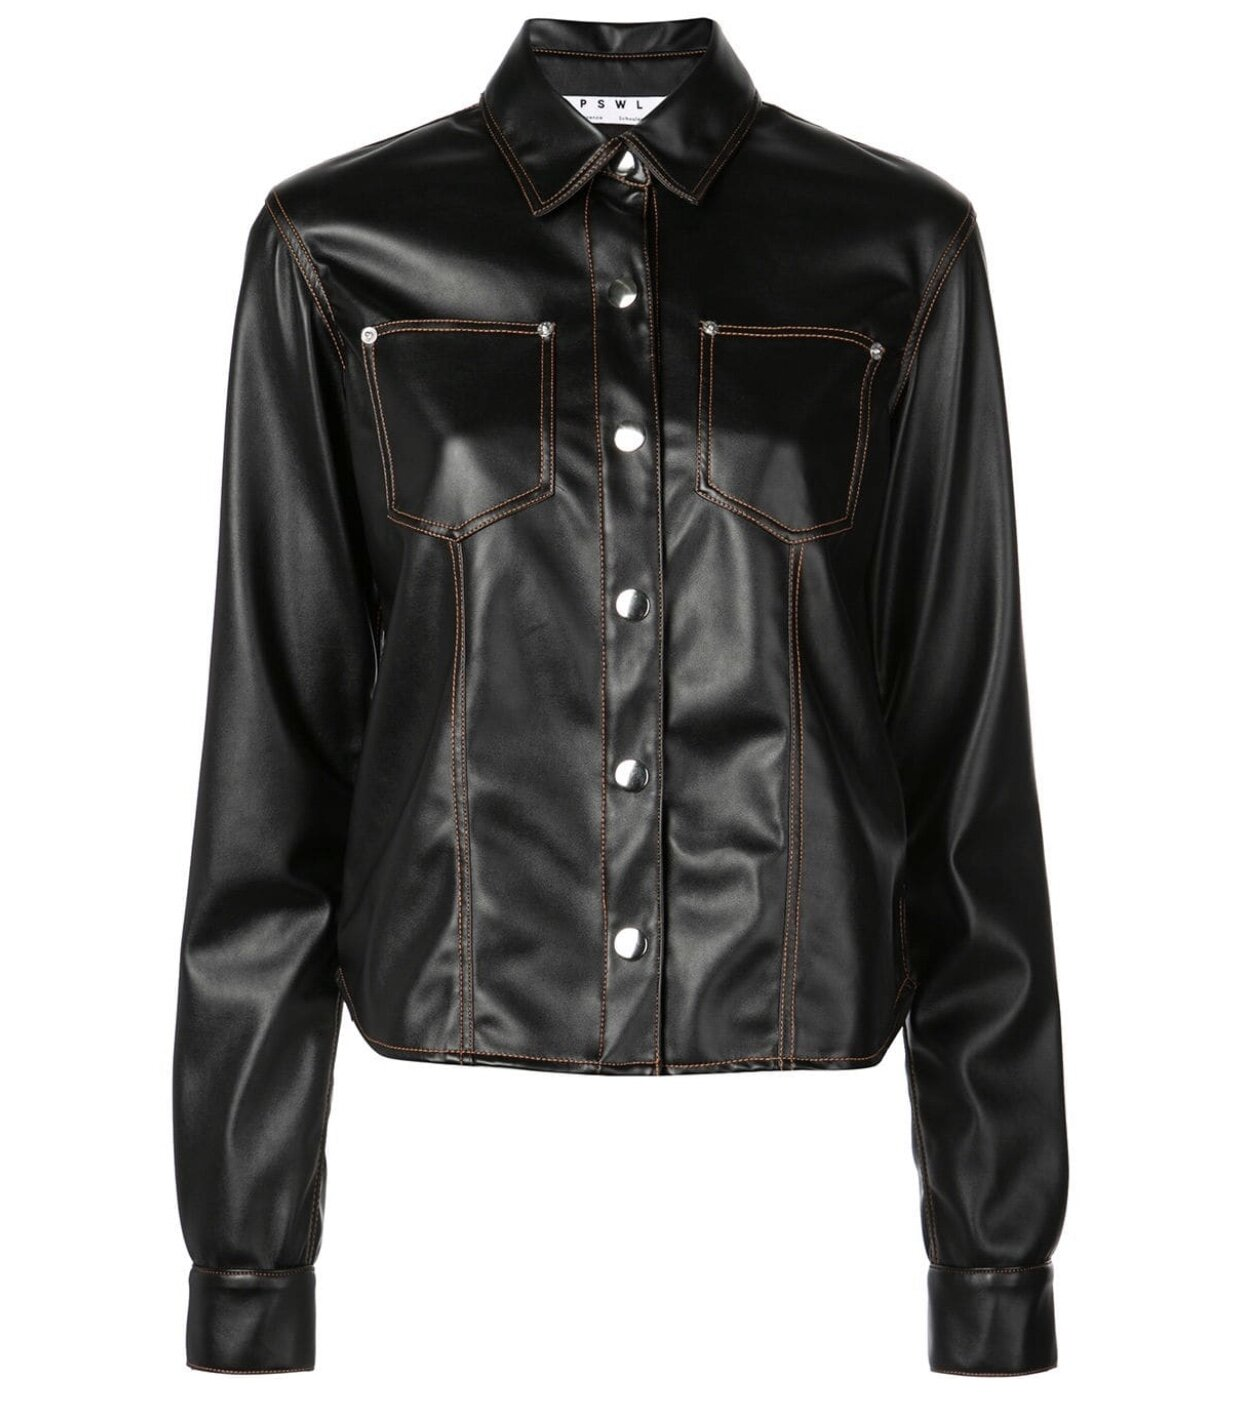 PROENZA SCHOULER - FAUX LEATHER SHIRT